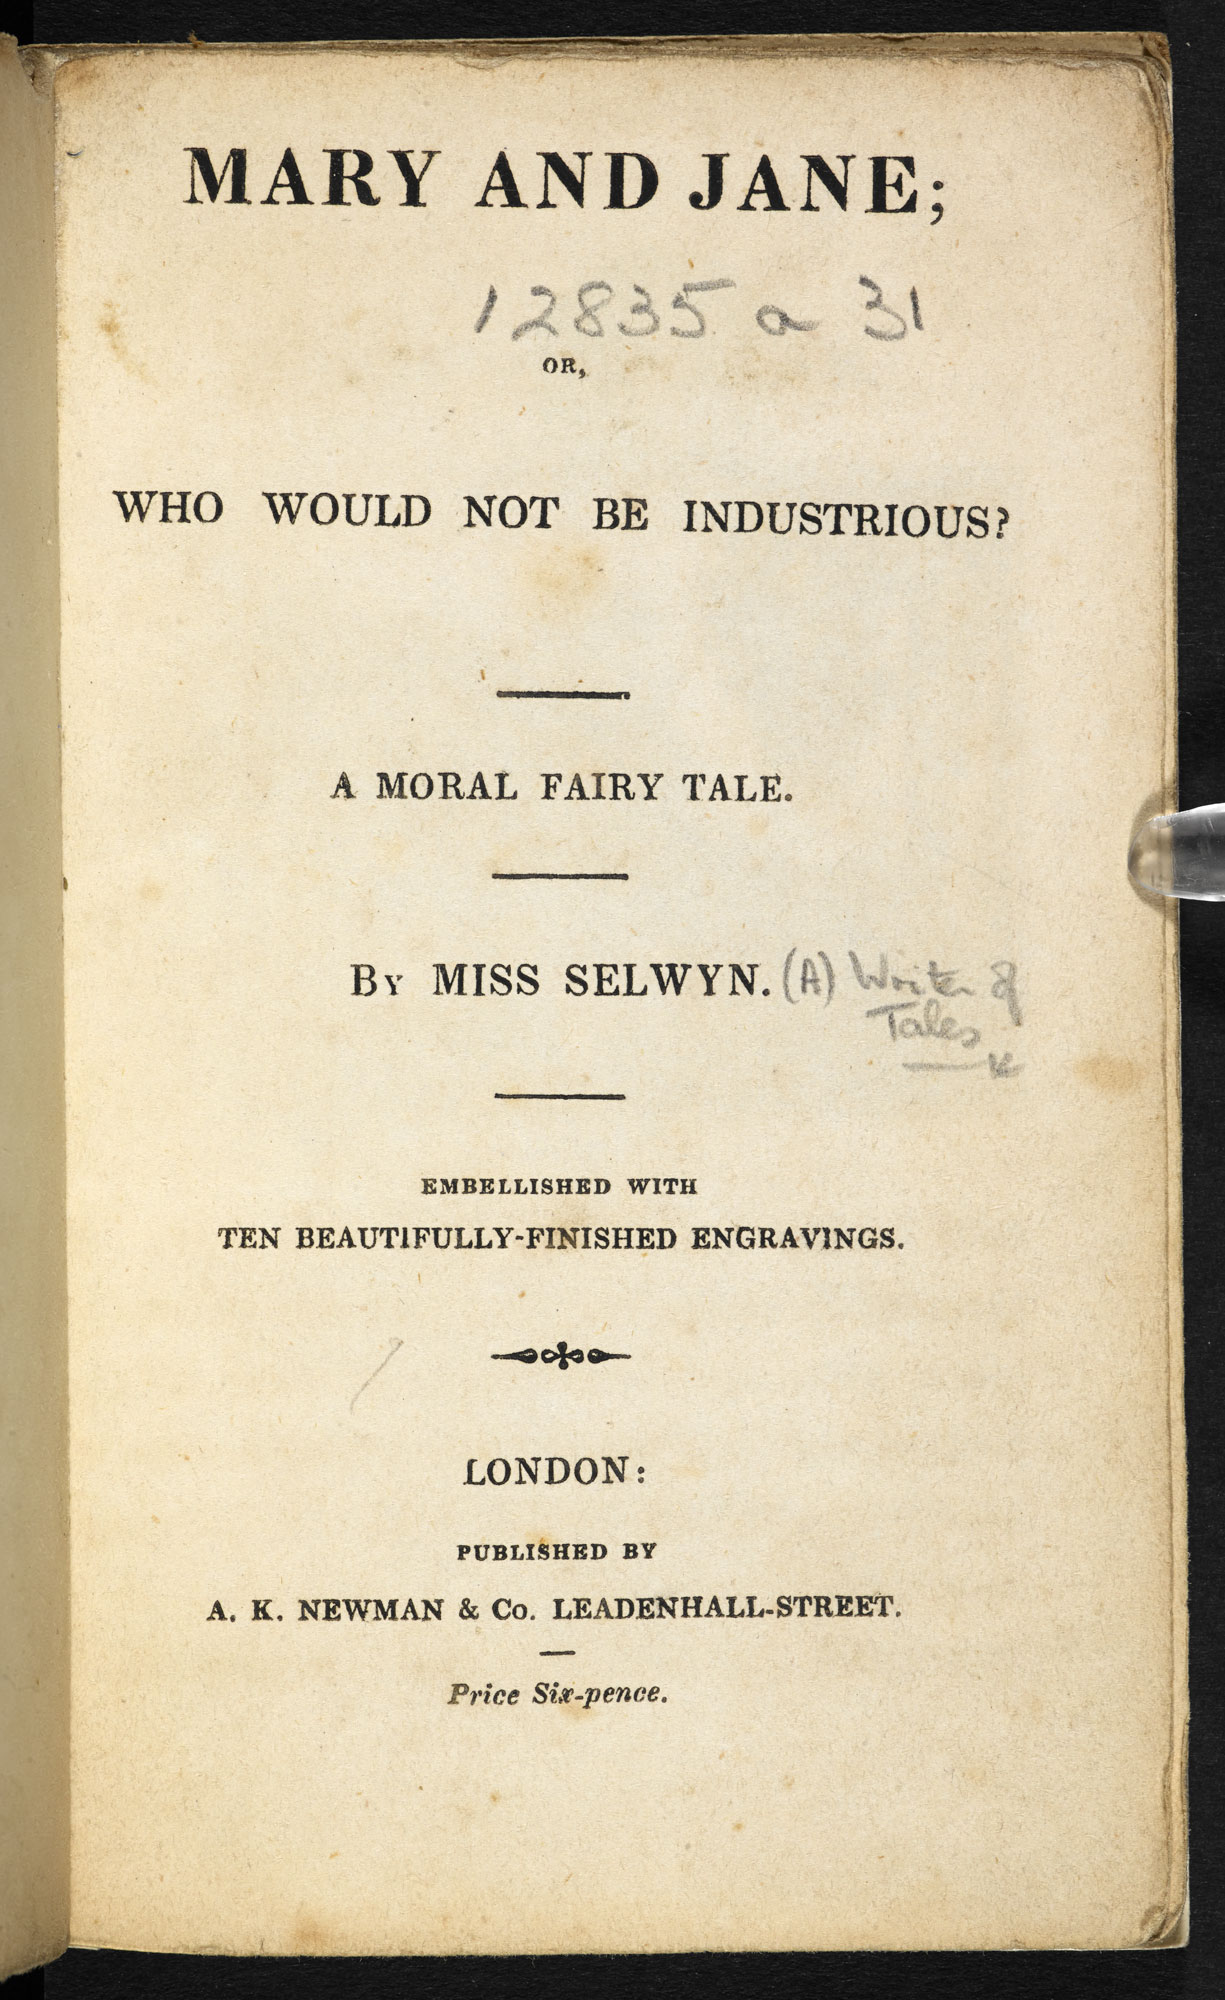 Miss Selwyn's Mary and Jane [page: title page]